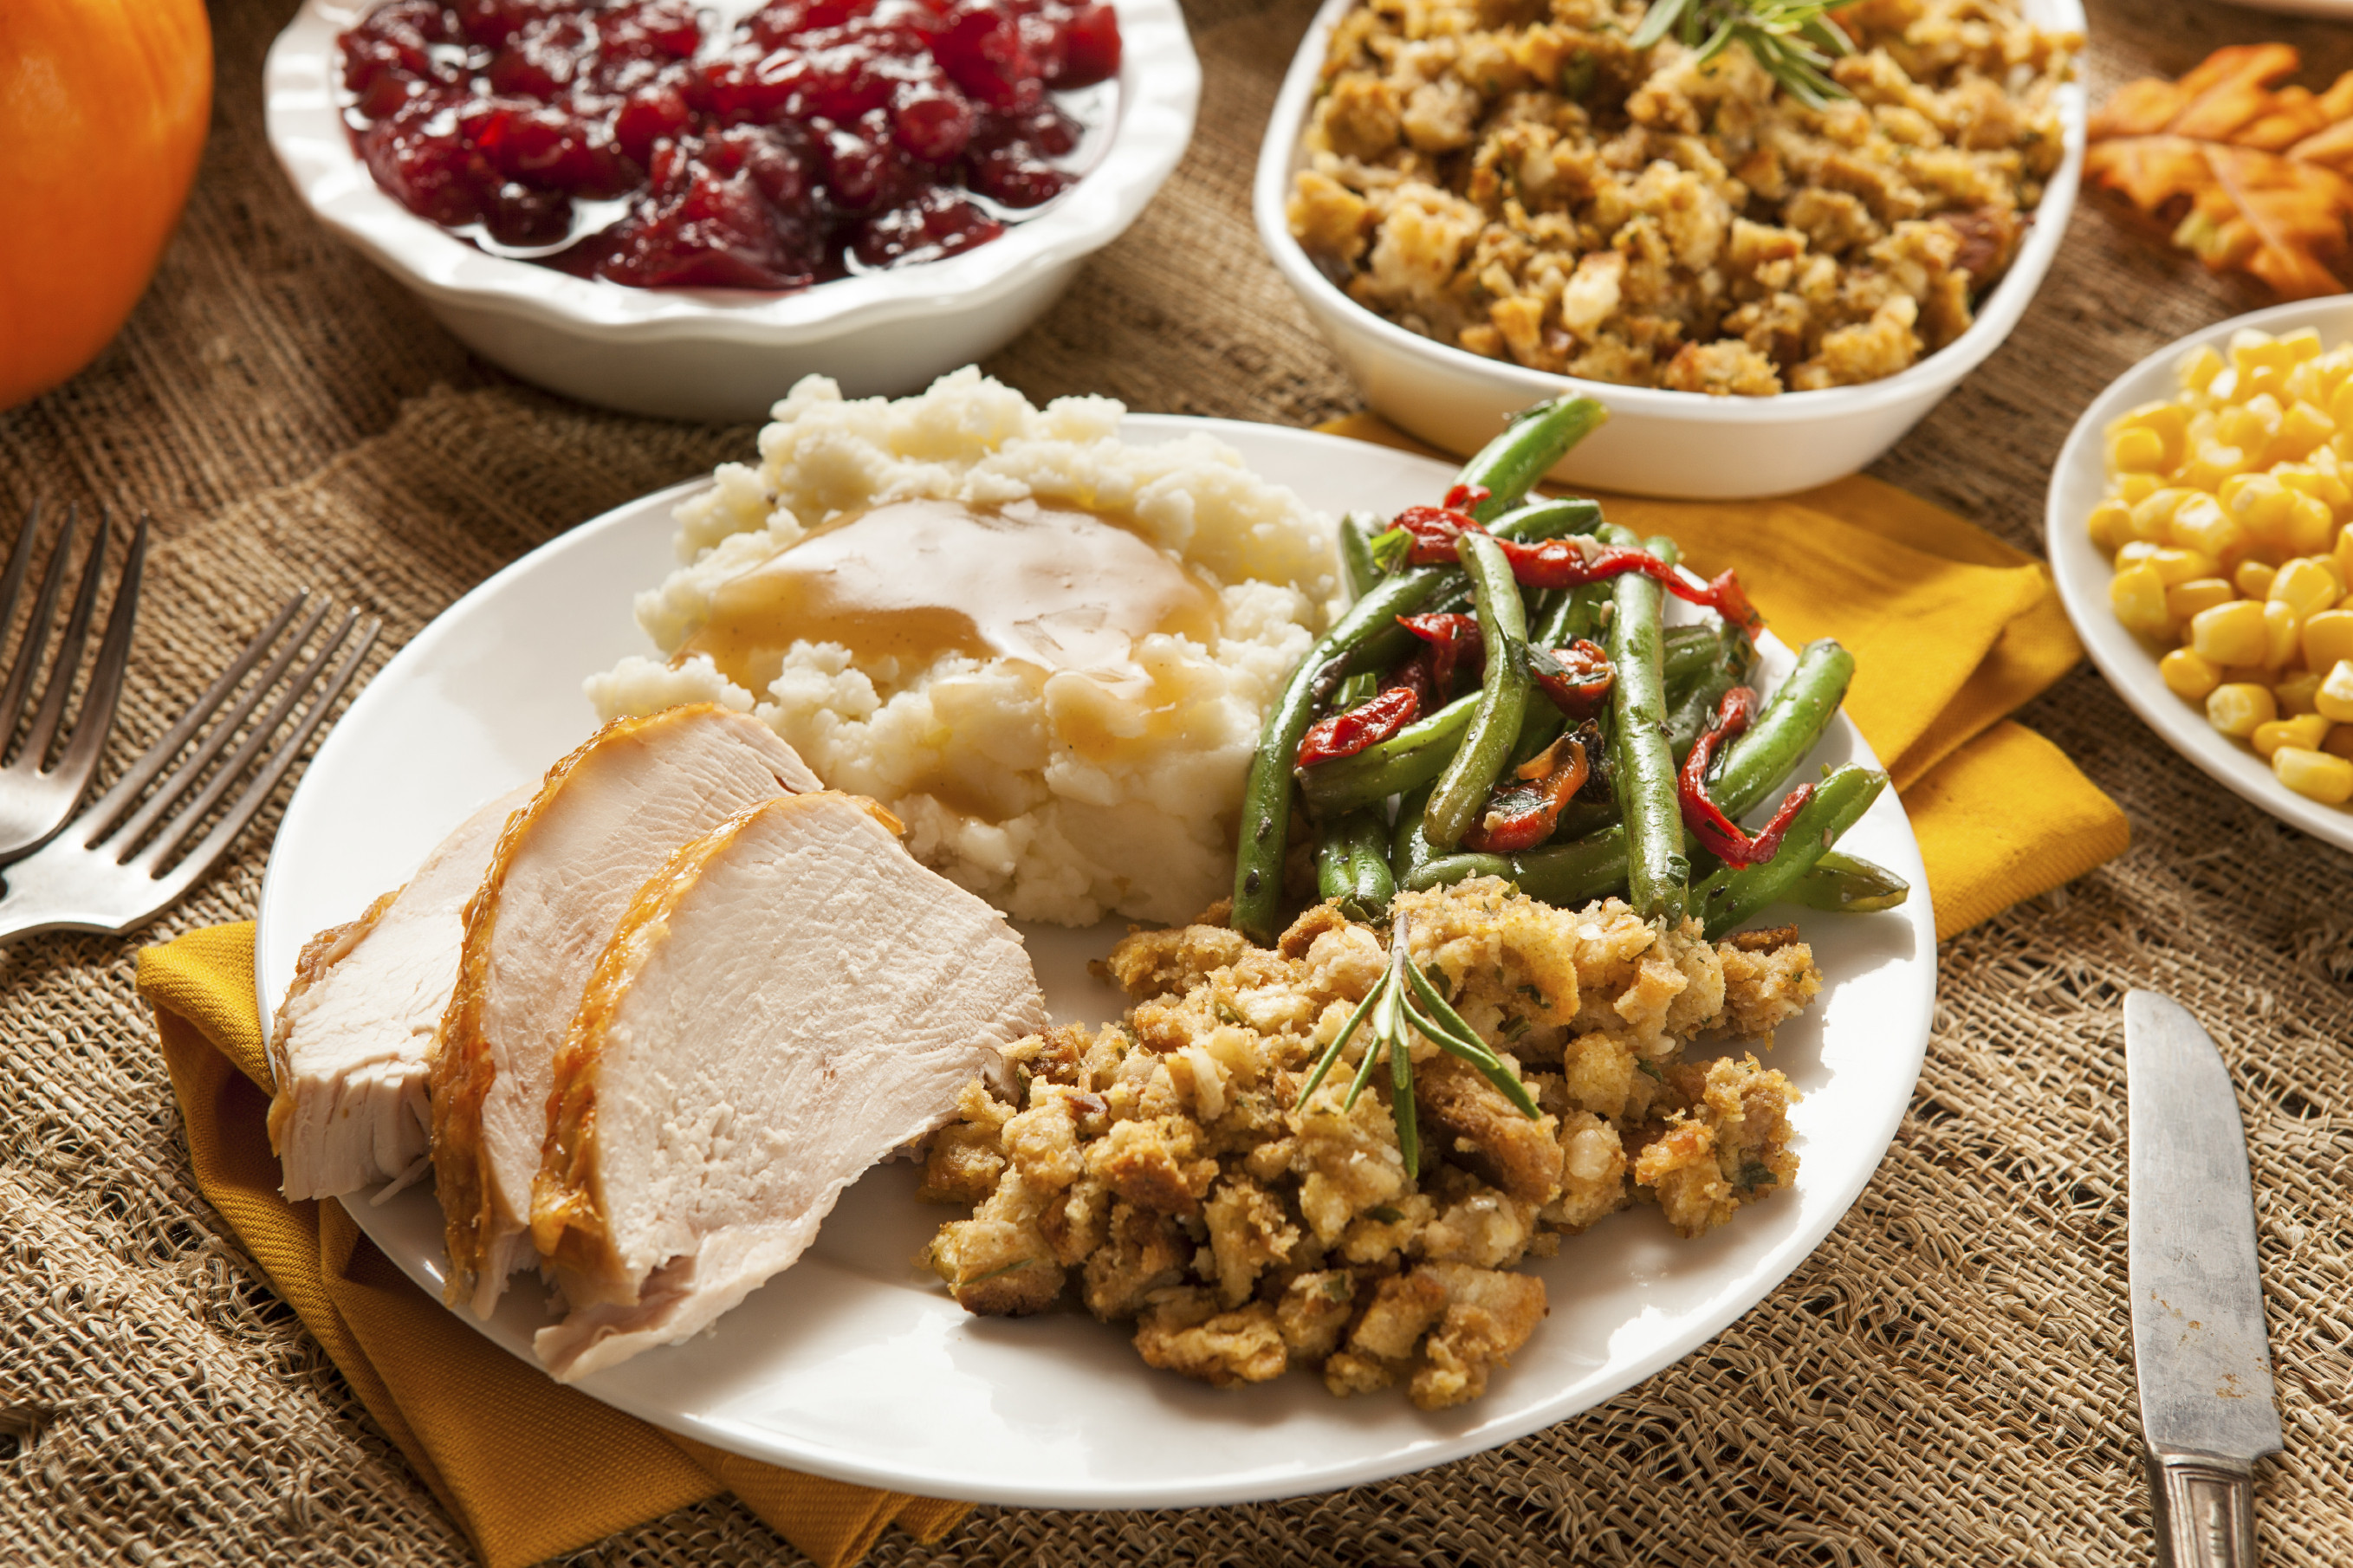 Thanksgiving Dinner Plate  What s really on your plate at Thanksgiving The Daily